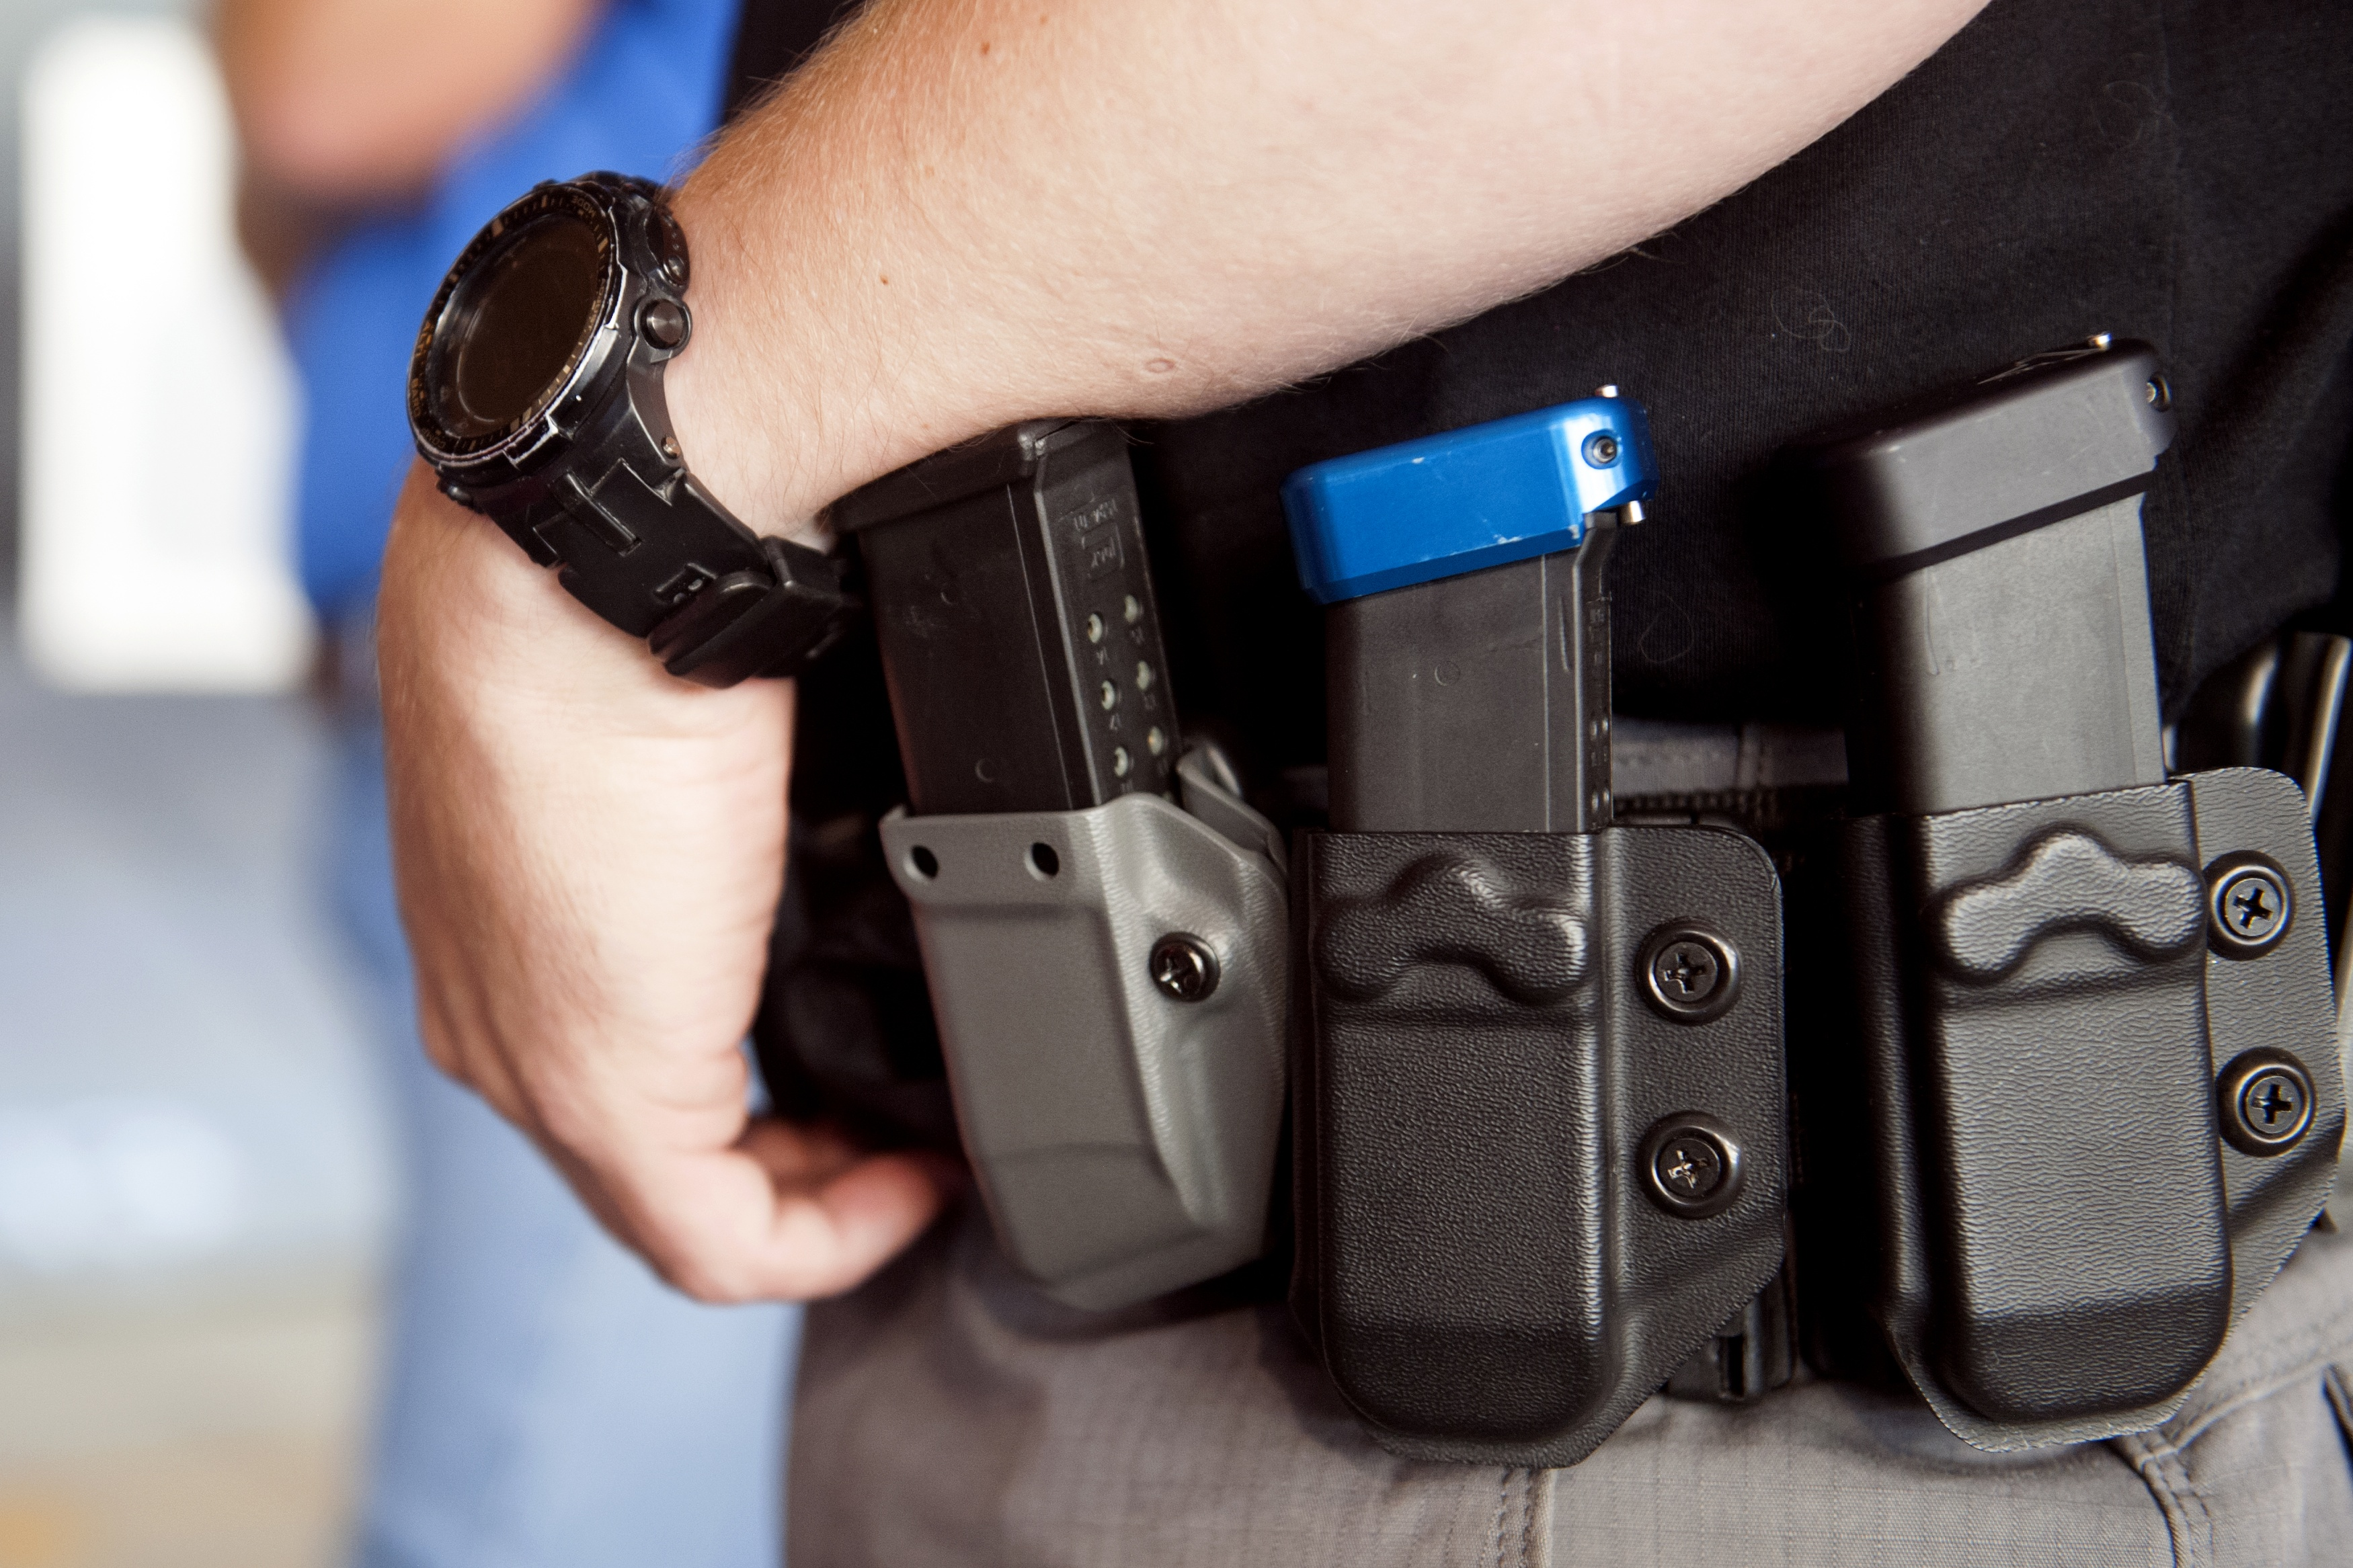 Magazine clips line the holster of a trainee during a three-day firearms course offered to school teachers and administrators by FASTER Colorado at Flatrock Training Center in Commerce City, Colorado on June 26, 2018. (Photo by JASON CONNOLLY/AFP/Getty Images)